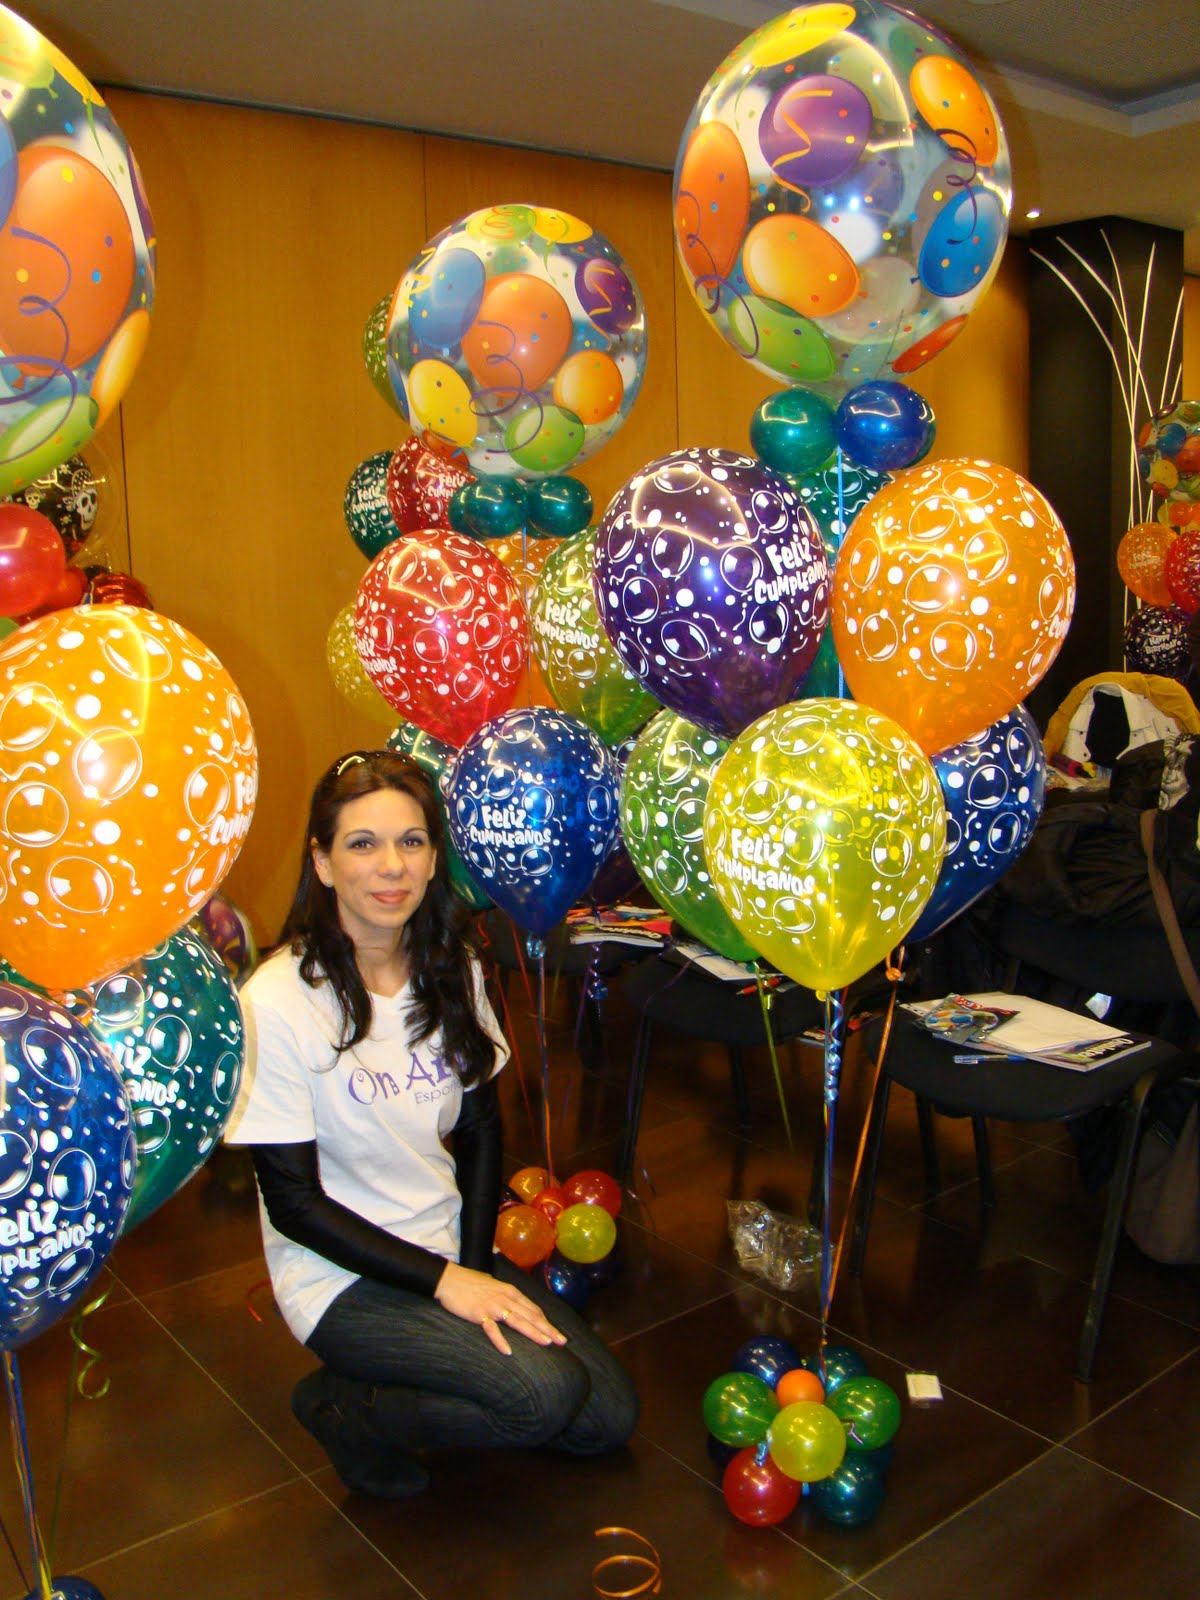 Artelou decoracion de globos for Decoracion con globos